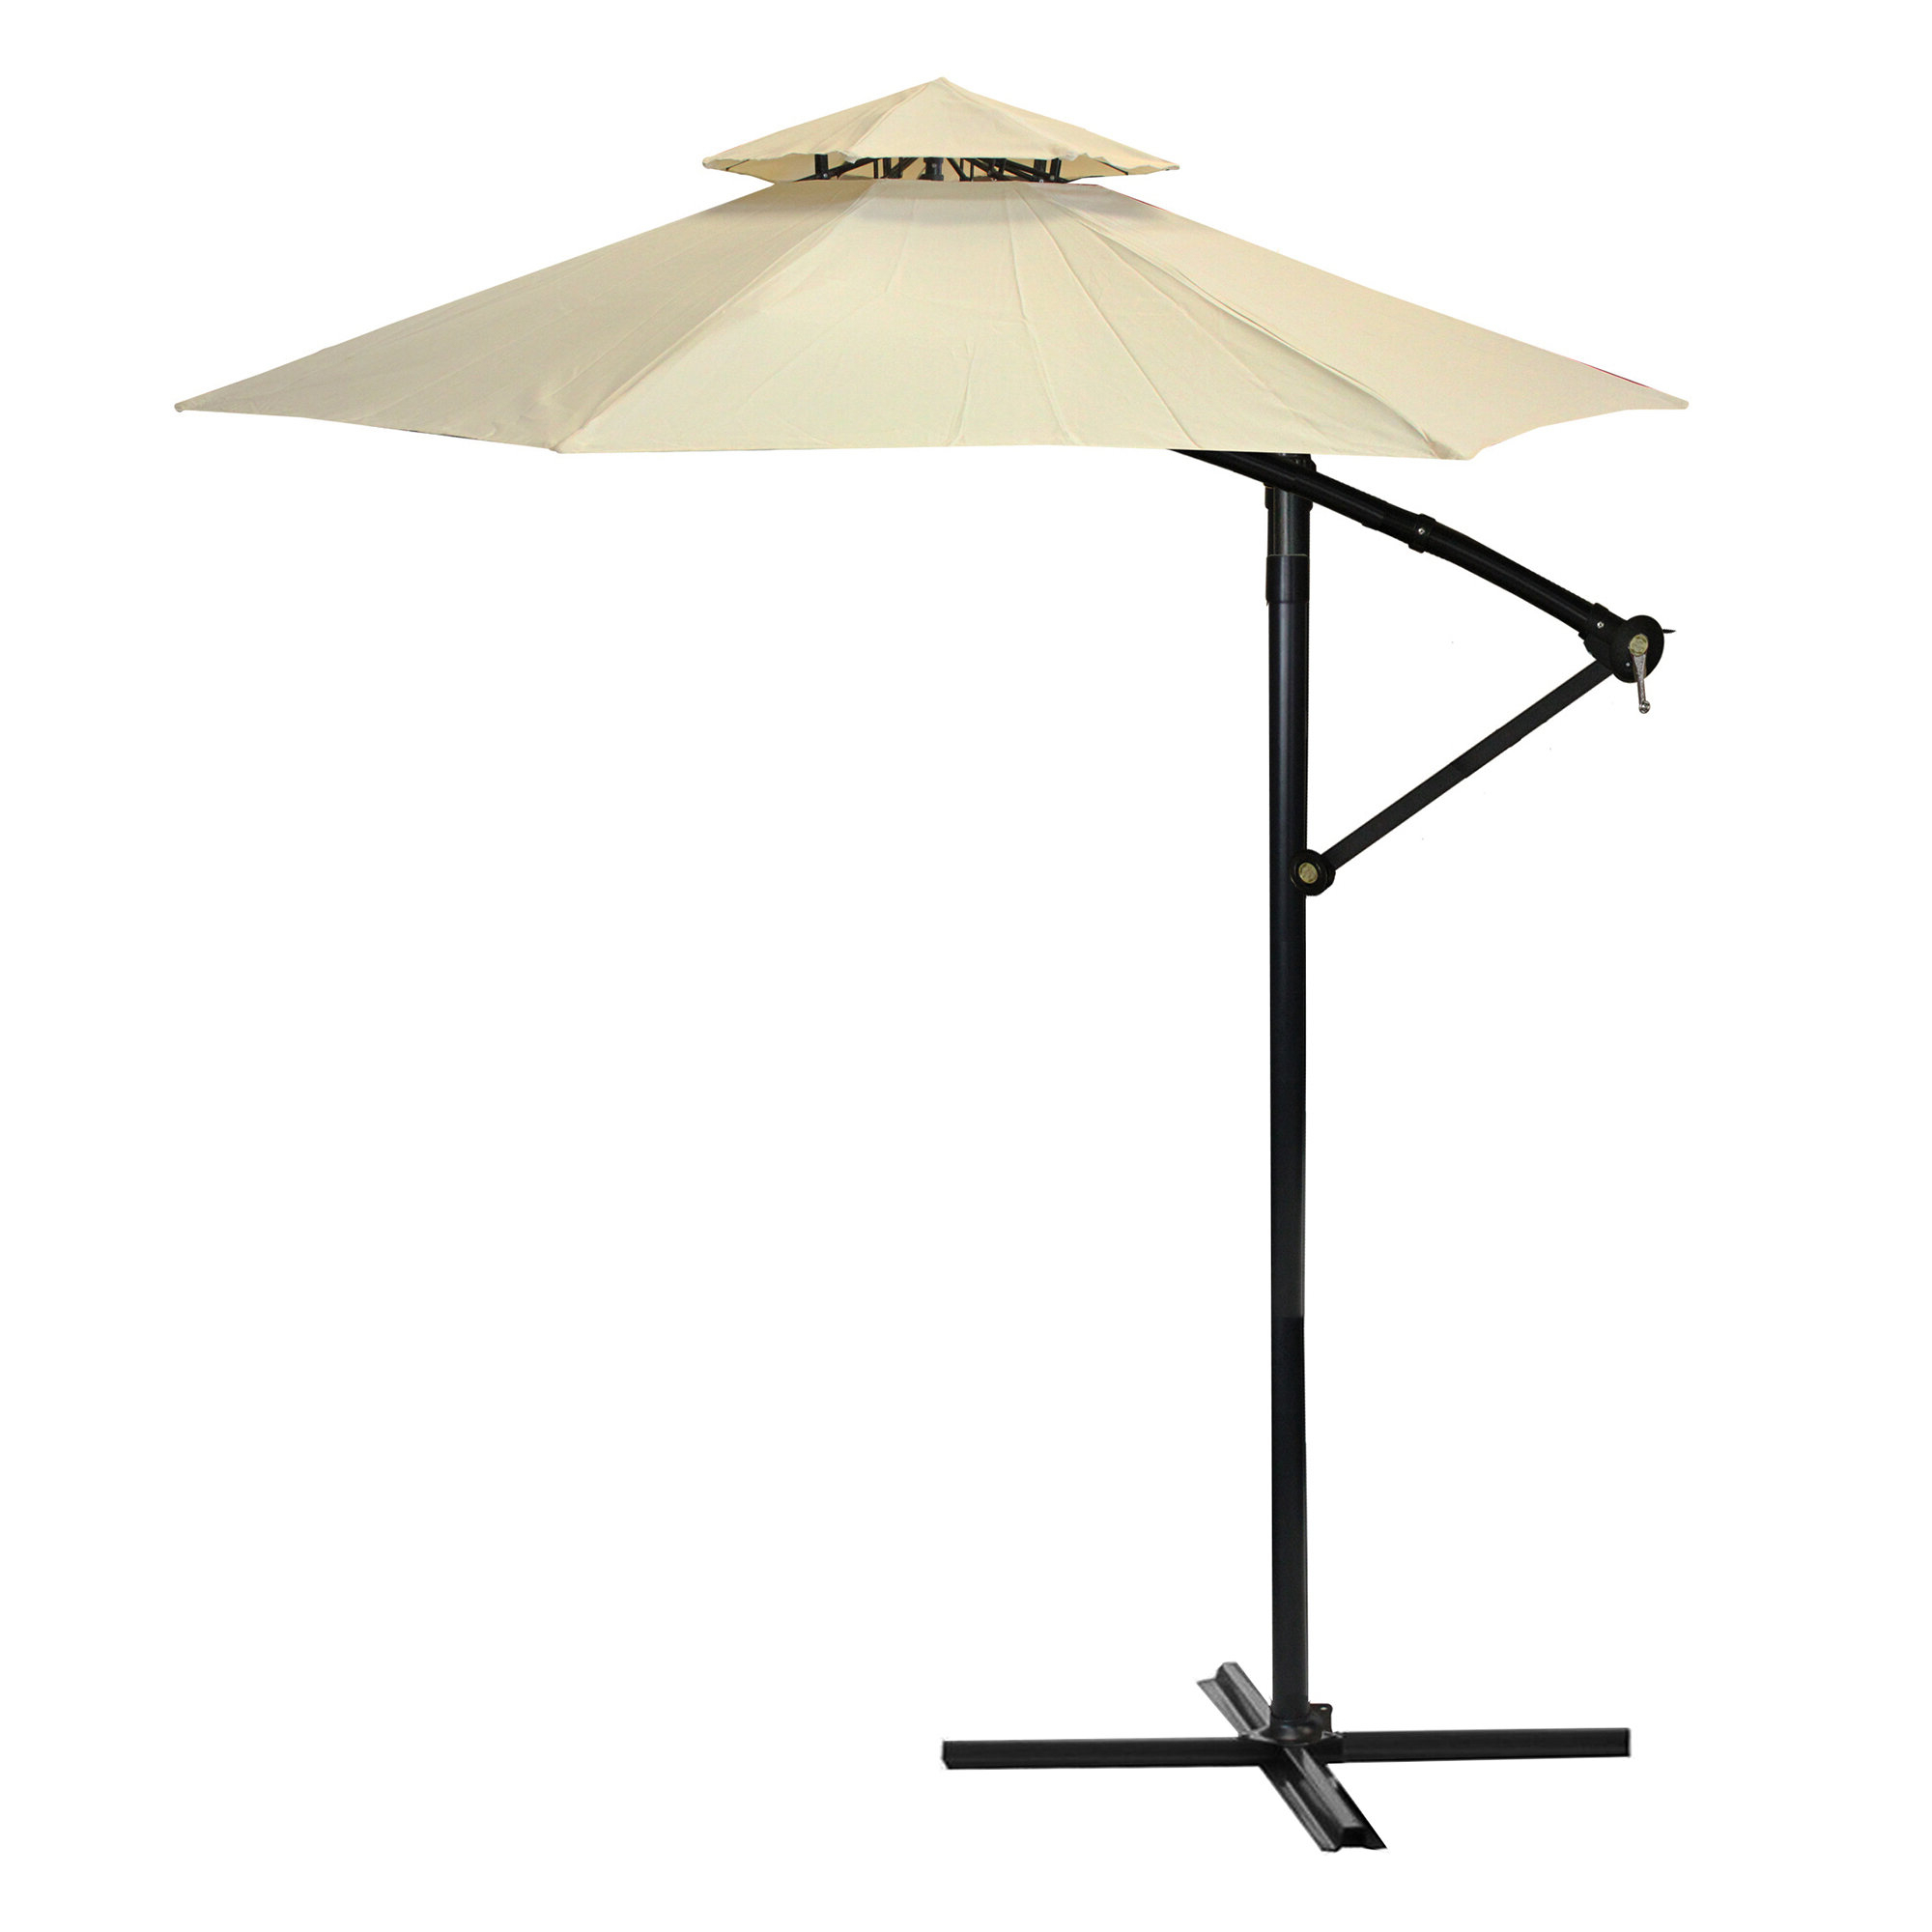 Most Recent 9.5' Cantilever Umbrella Intended For Justis Cantilever Umbrellas (Gallery 7 of 20)